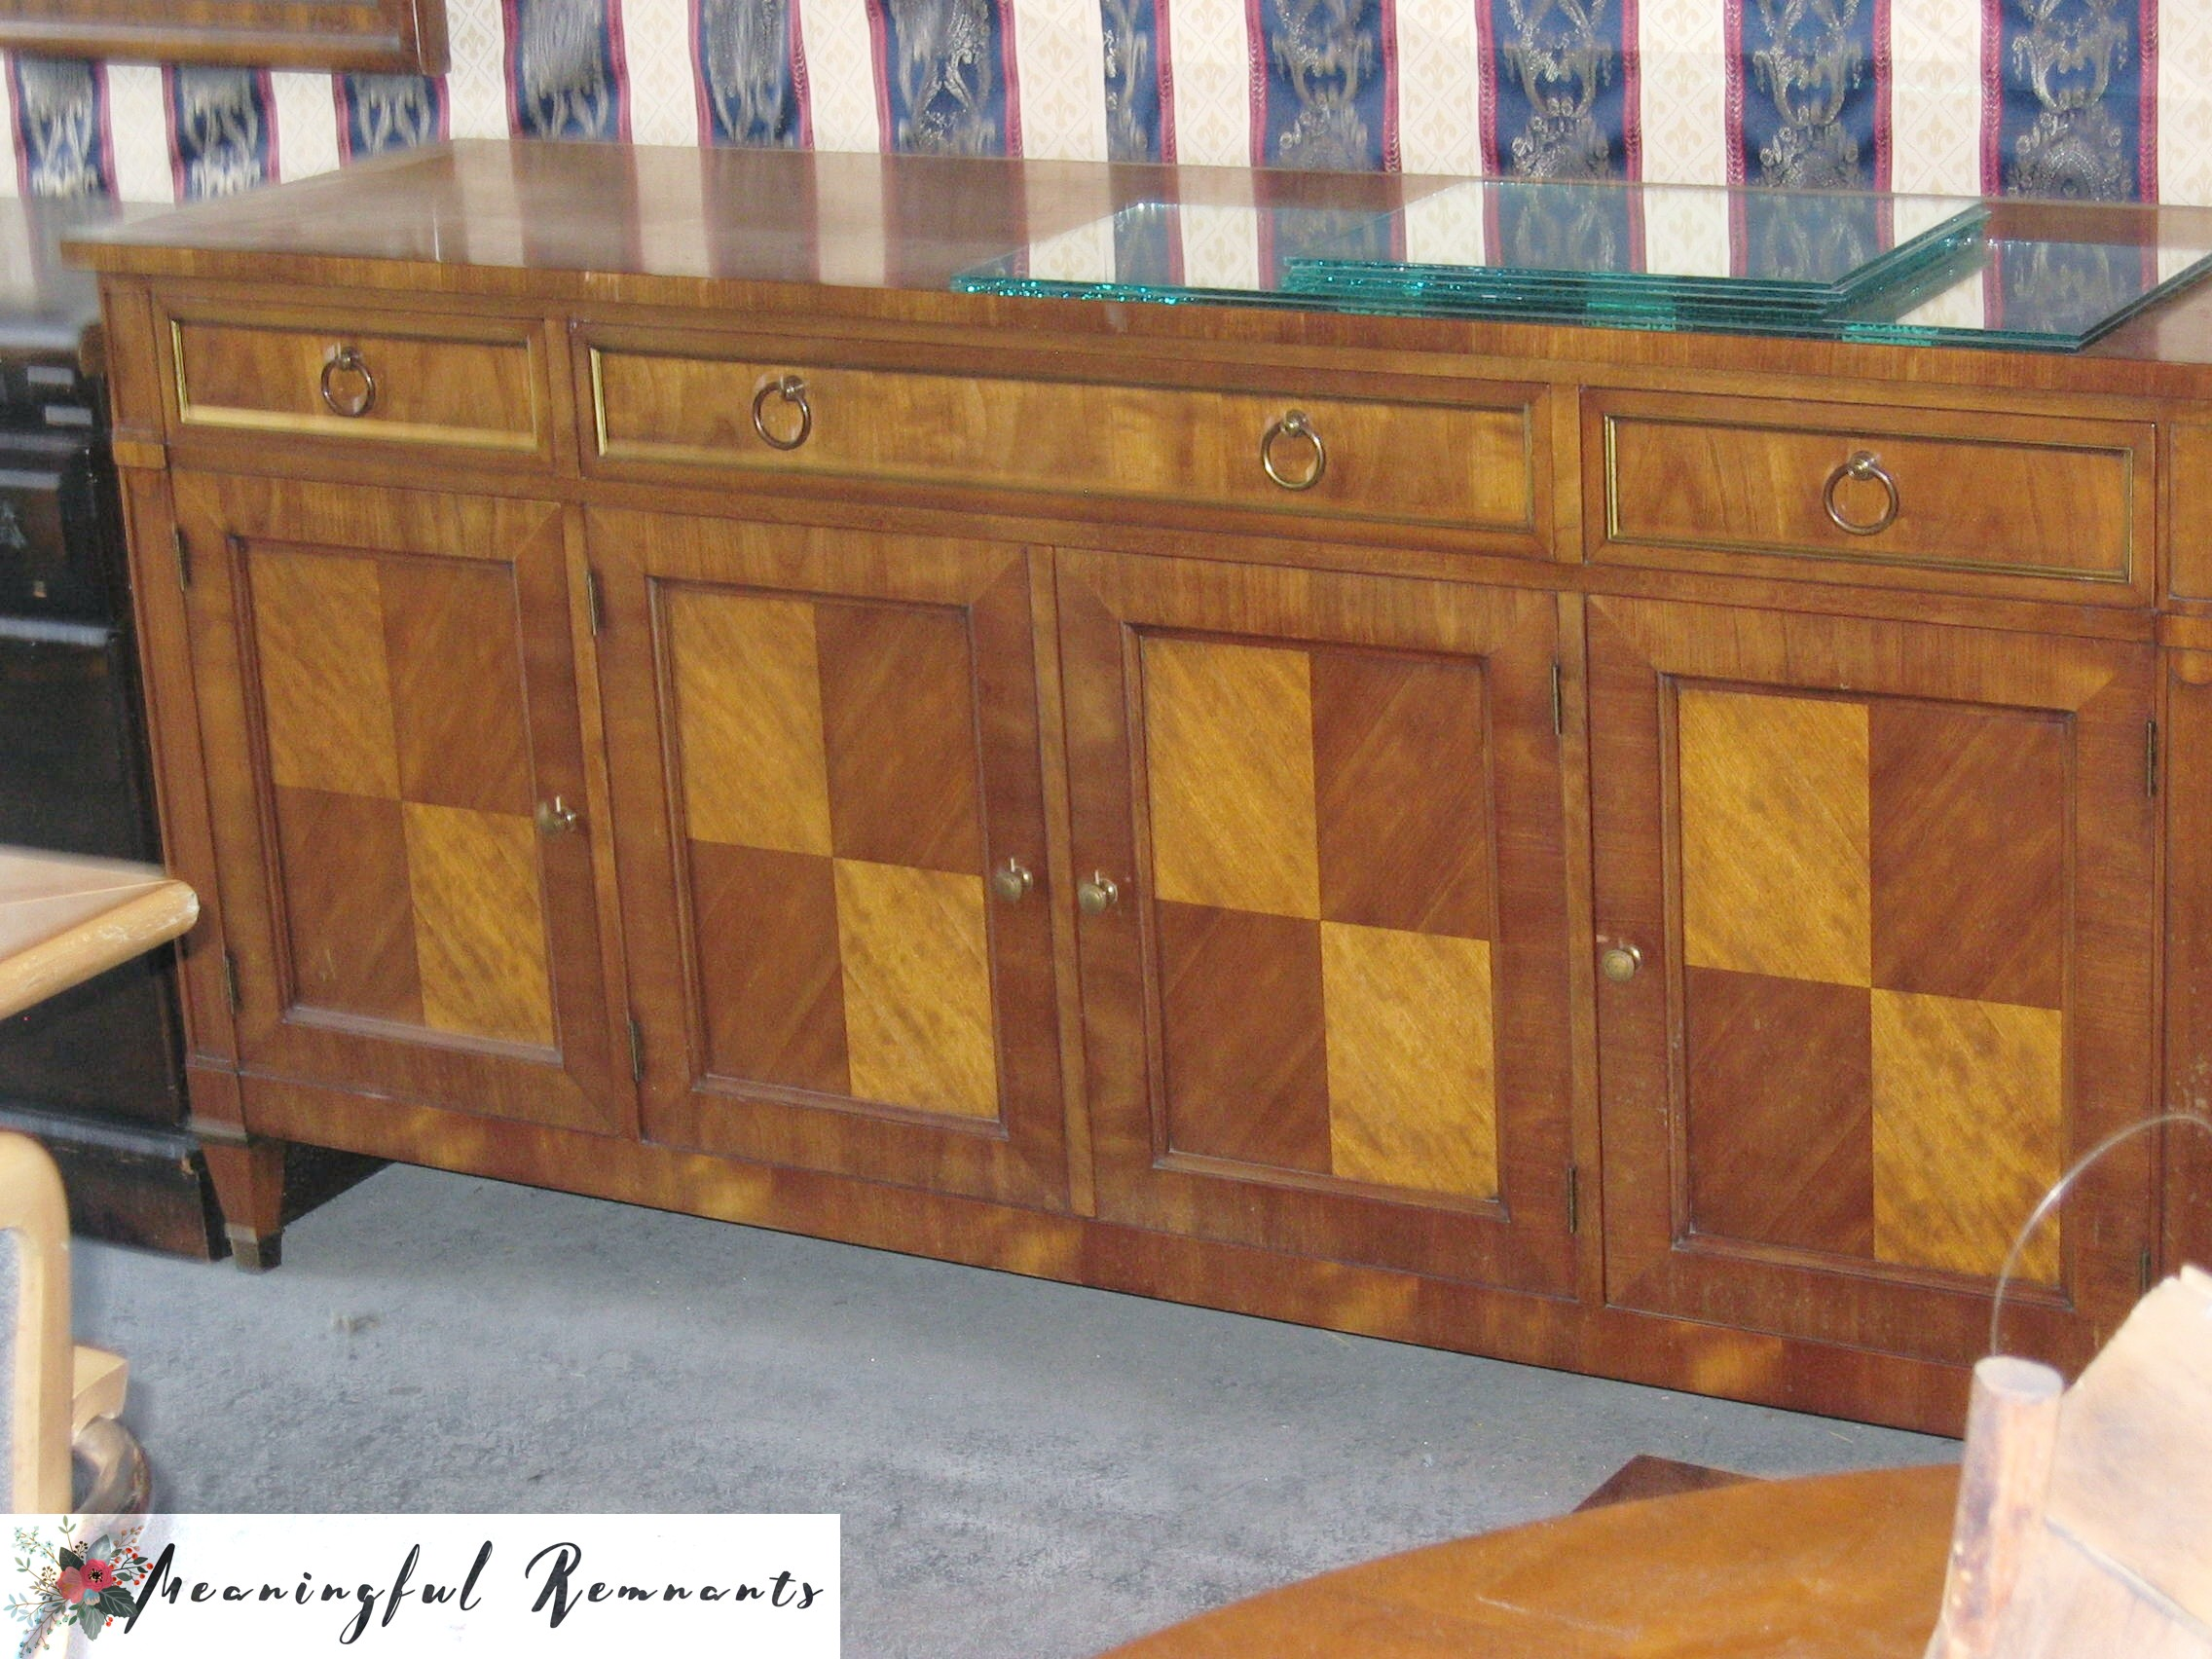 sideboard purchased